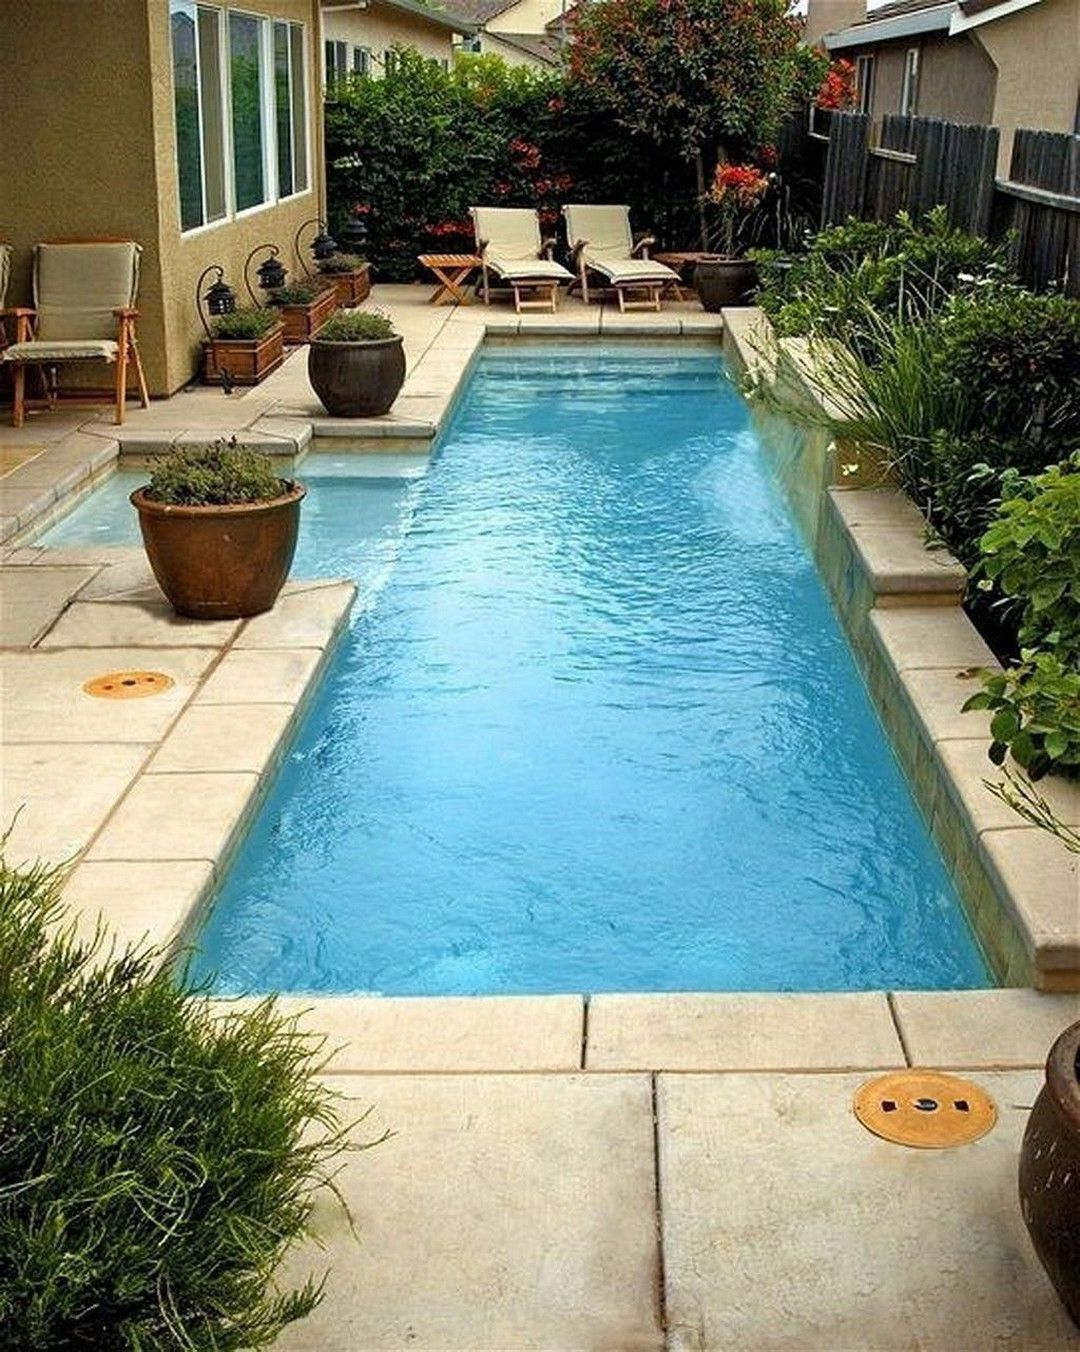 Amazing Pool Ideas Perfect For Small Backyards Decor Around The World Small Pool Design Small Backyard Pools Swimming Pools Backyard